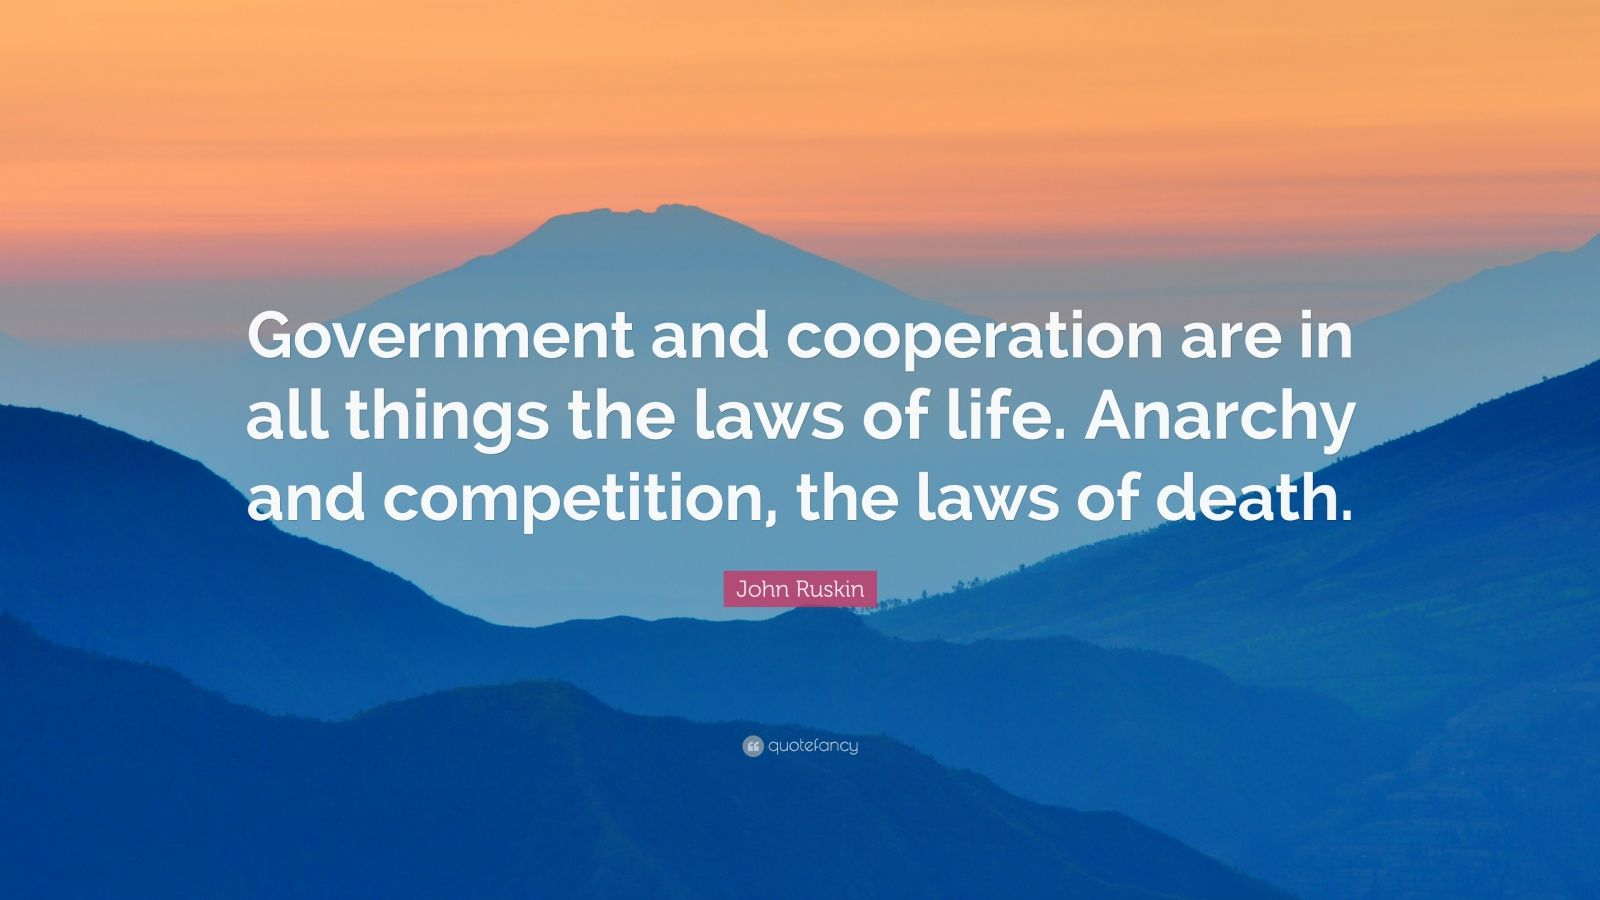 """John Ruskin Quote: """"Government and cooperation are in all things the laws of life. Anarchy and competition, the laws of death."""""""